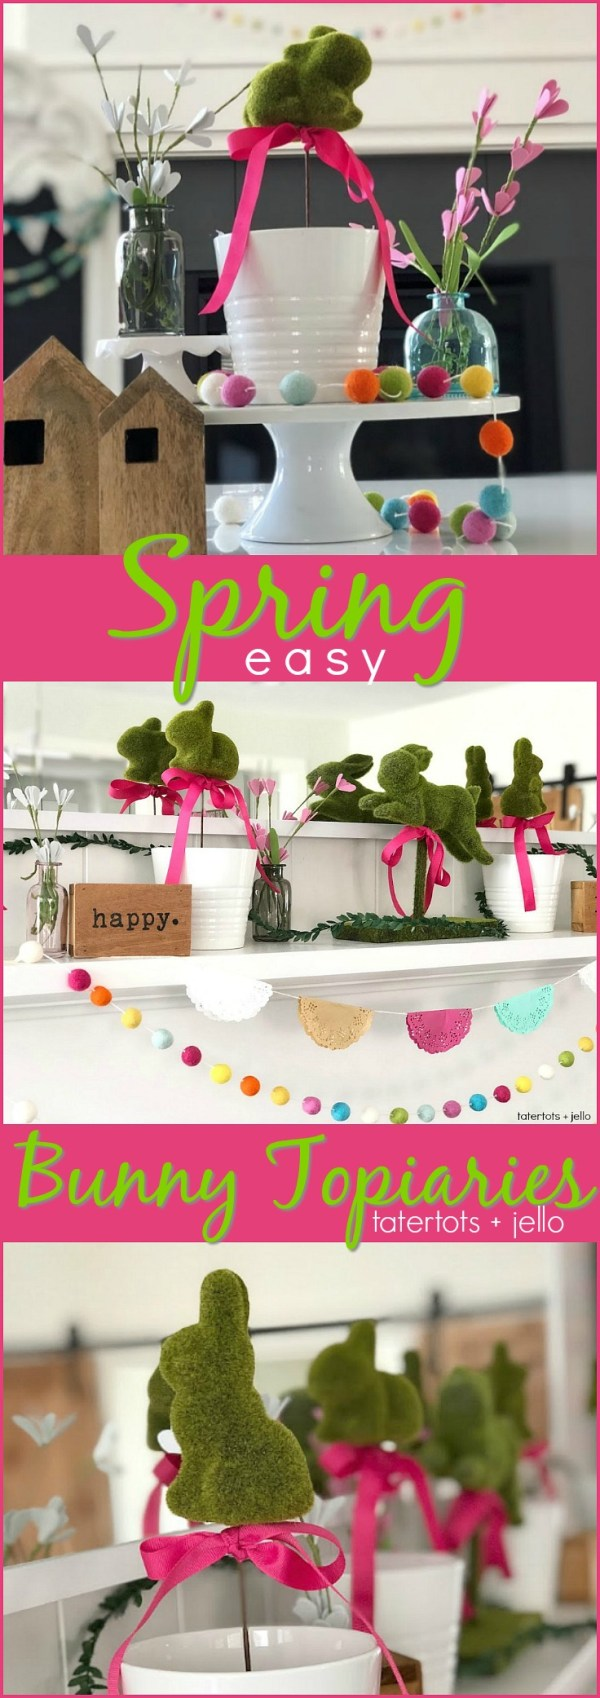 Spring Floral Bunny Topiaries - easy to make a beautiful focal point on a coffee table, mantel or shelf!